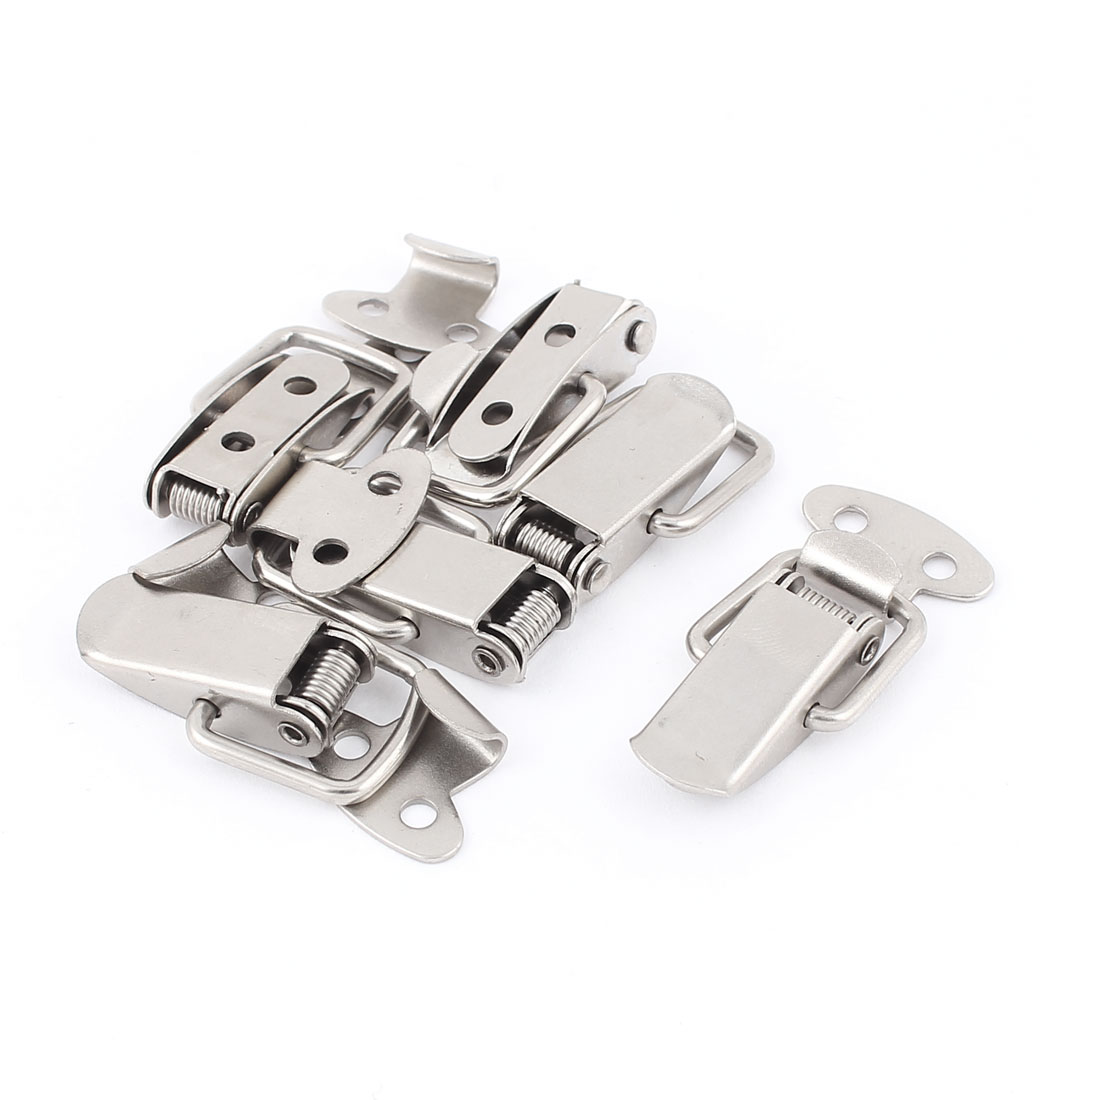 6pcs Spring Loaded Metal Suitcase Chest Tool Boxes Locking Toggle Latch Hasp Lock